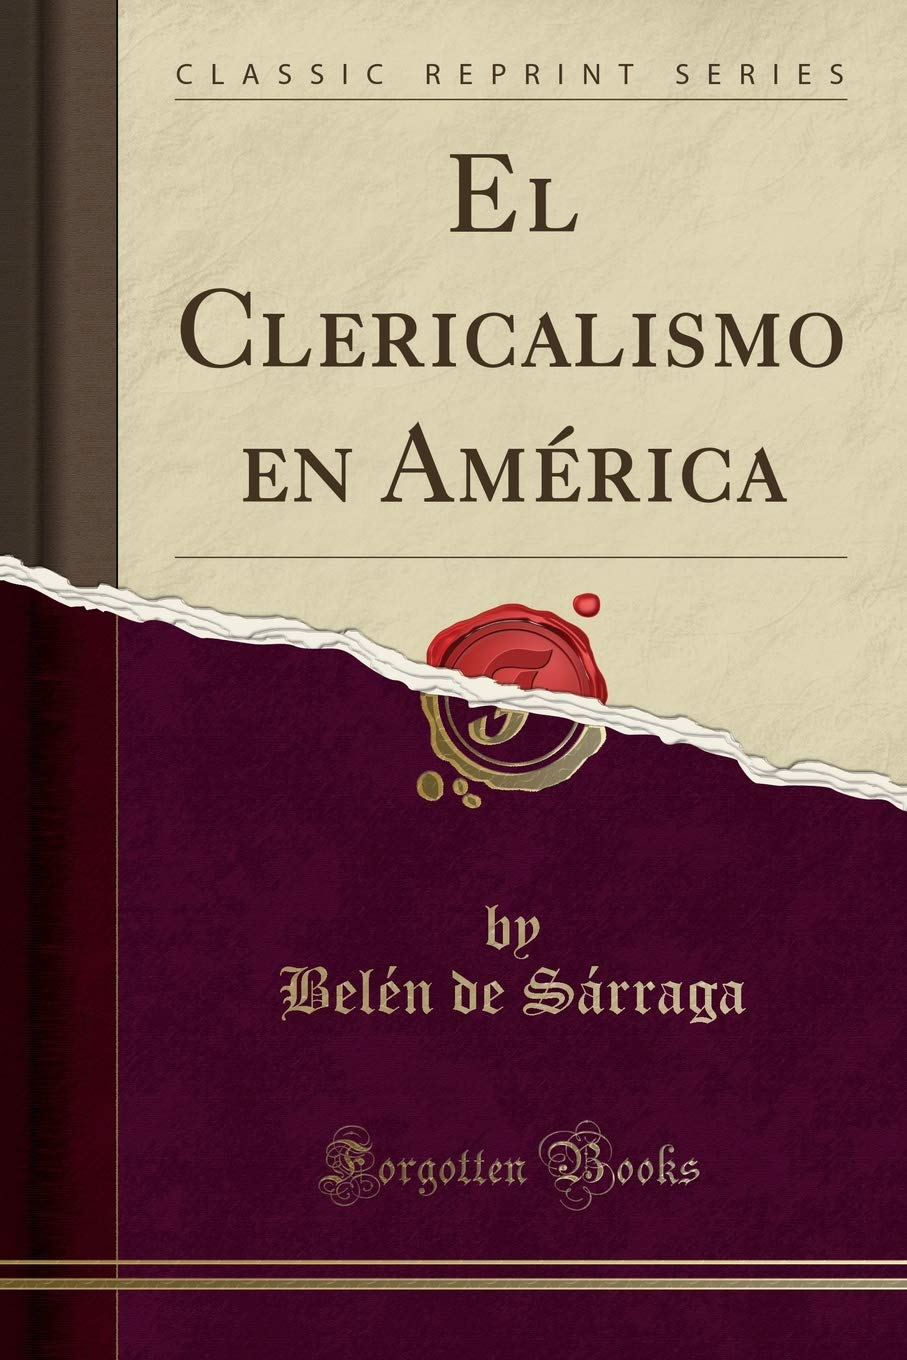 822bbe9c76e El Clericalismo en América (Classic Reprint) (Spanish Edition) (Spanish)  Paperback – March 20, 2018